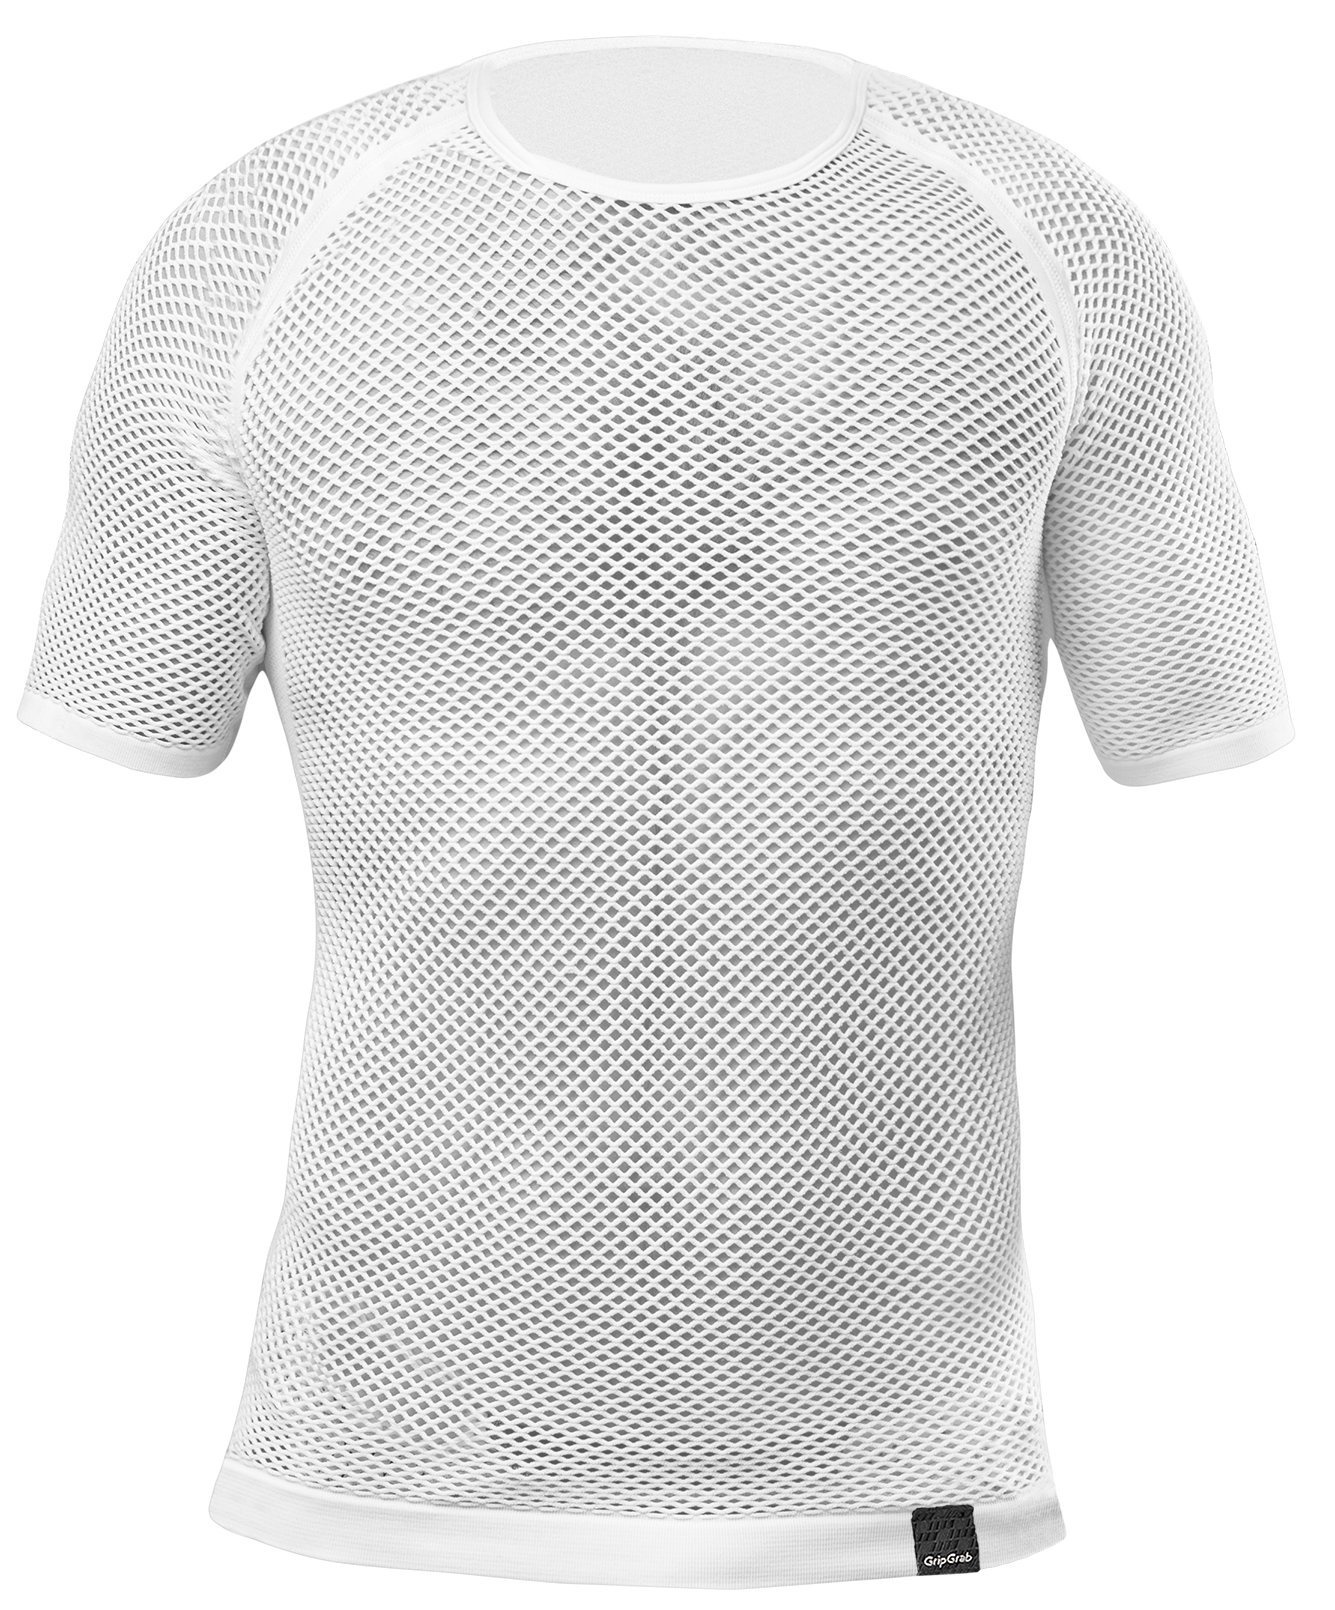 GripGrab 3-Season Short Sleeve Baselayer - Hvid